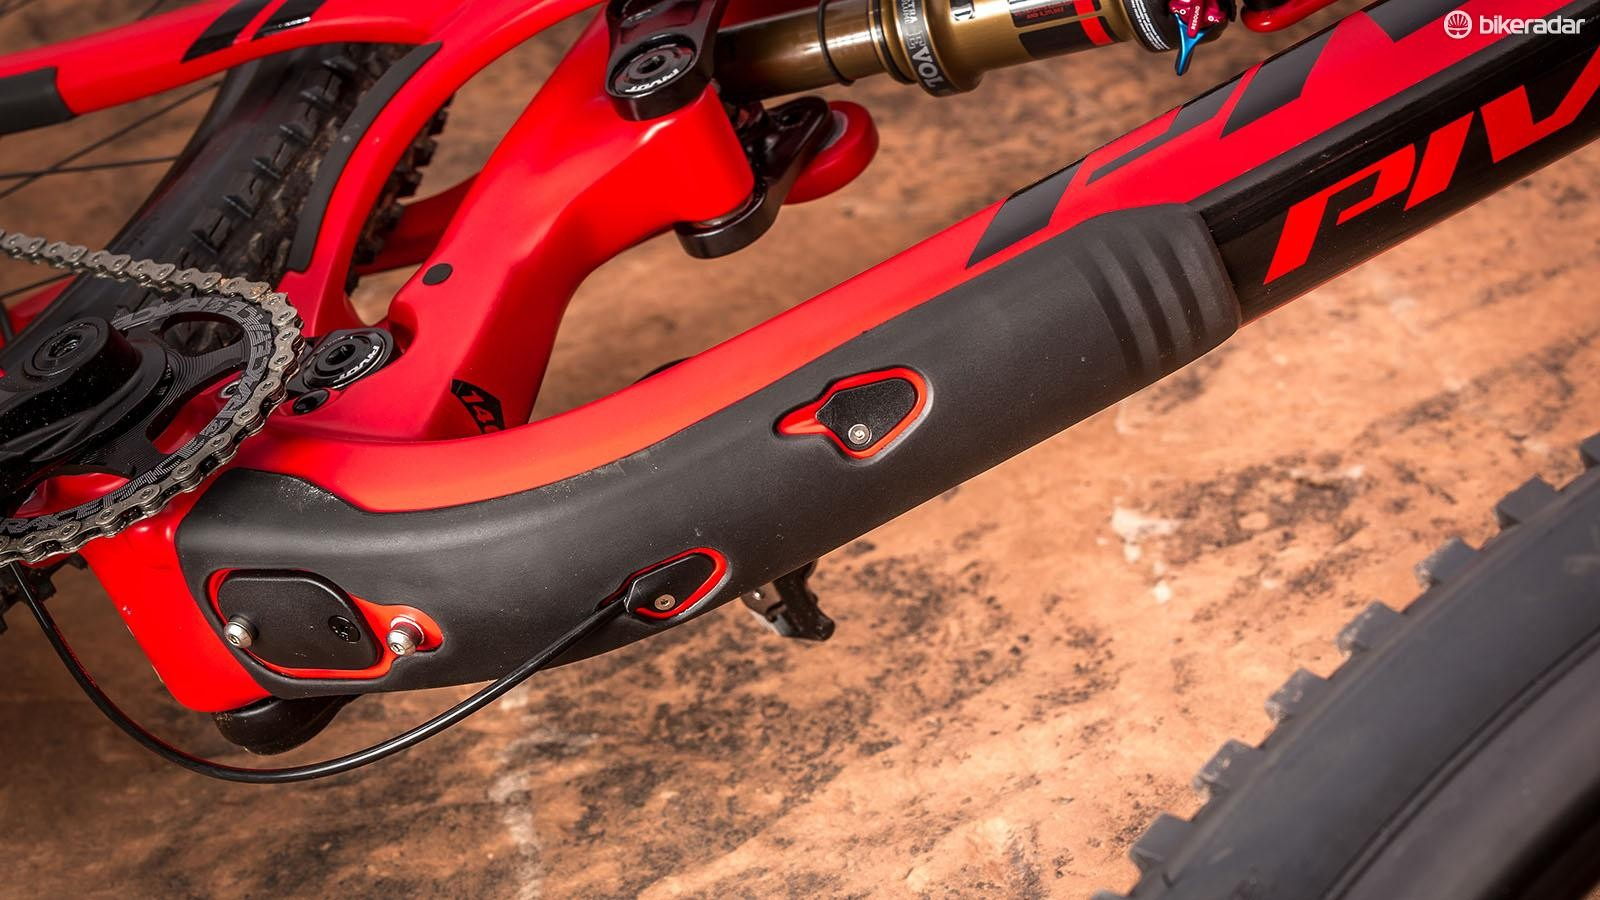 In addition to the down tube protection, there are ports for cables as well as a Di2 battery on the underbelly of the Mach 5.5 Carbon